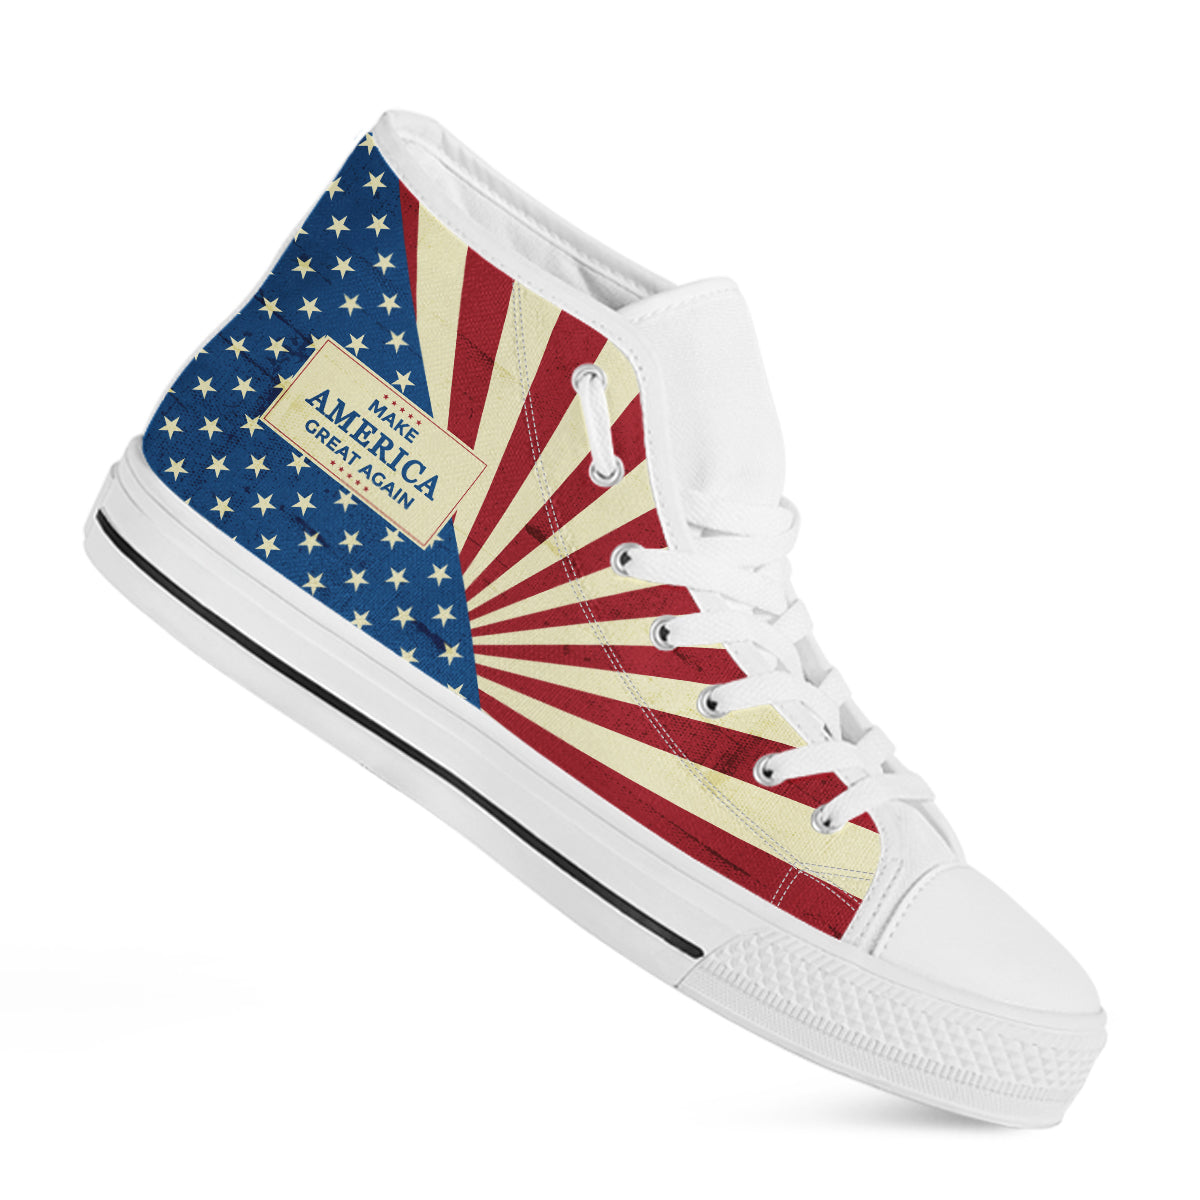 MAGA Pastel - Women's High Top Shoes